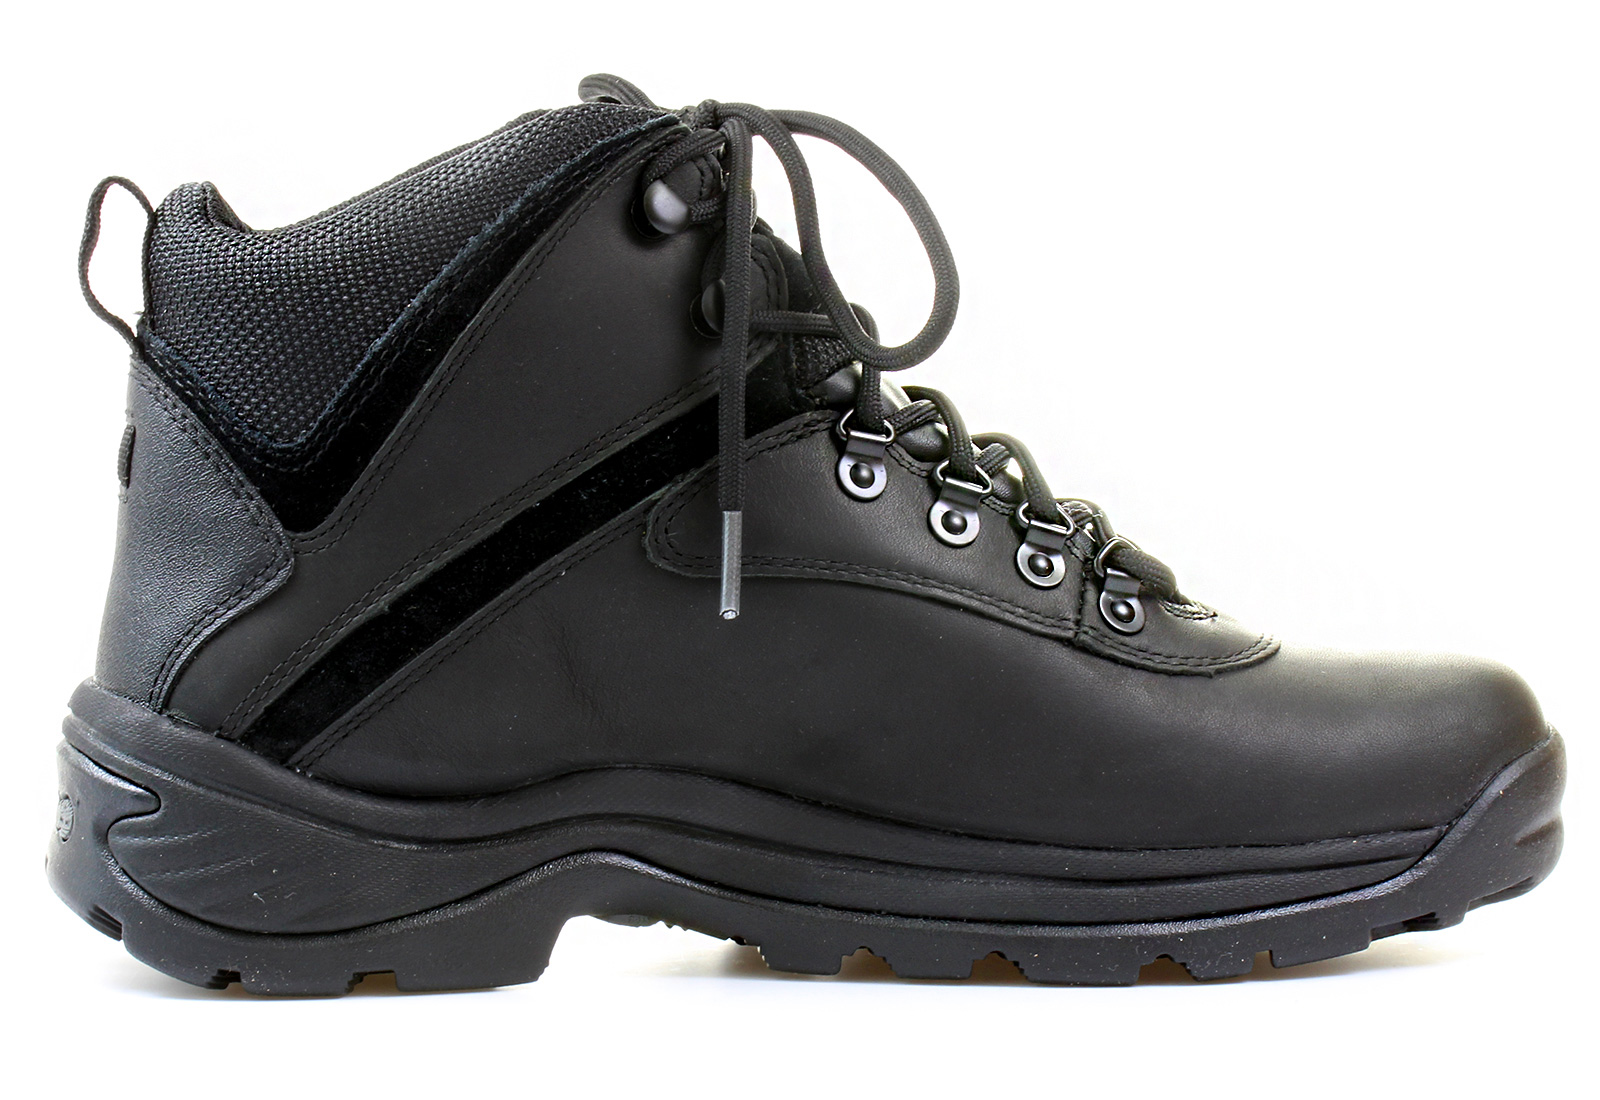 Timberland Boots White Ledge 12122 Blk Online Shop